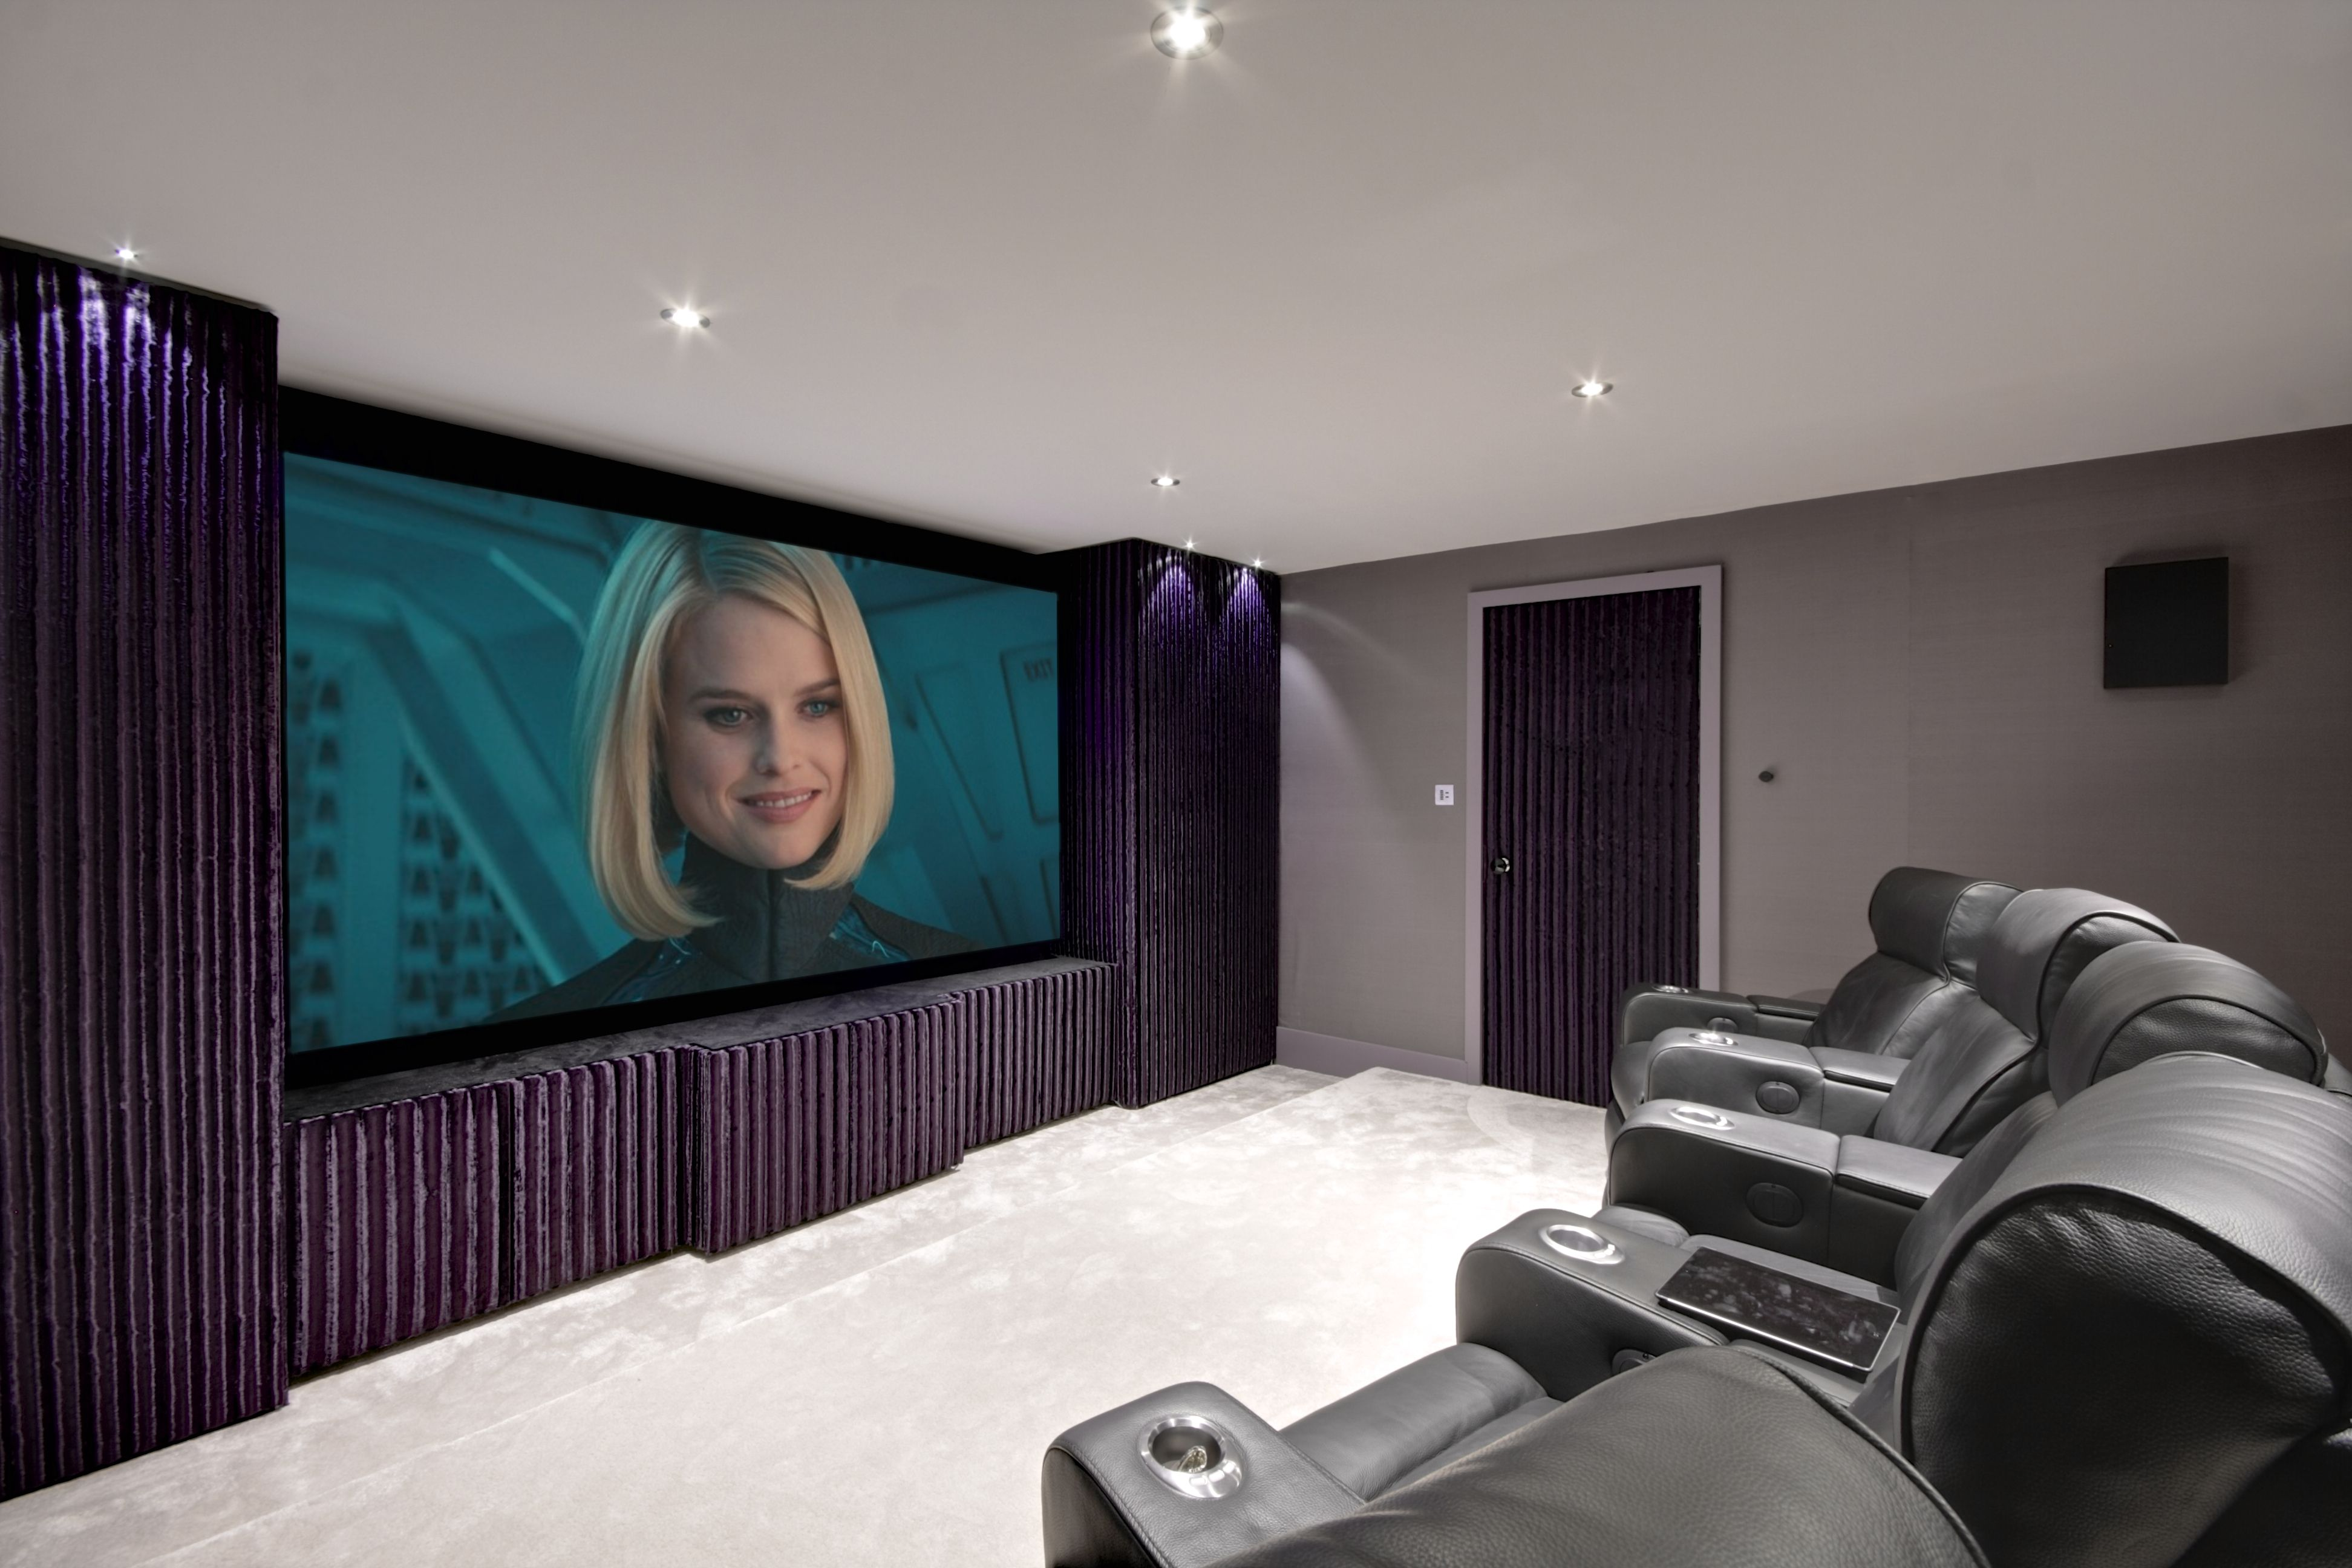 home cinema garage conversion home theater design home theater setup home theater seating  [ 3888 x 2592 Pixel ]